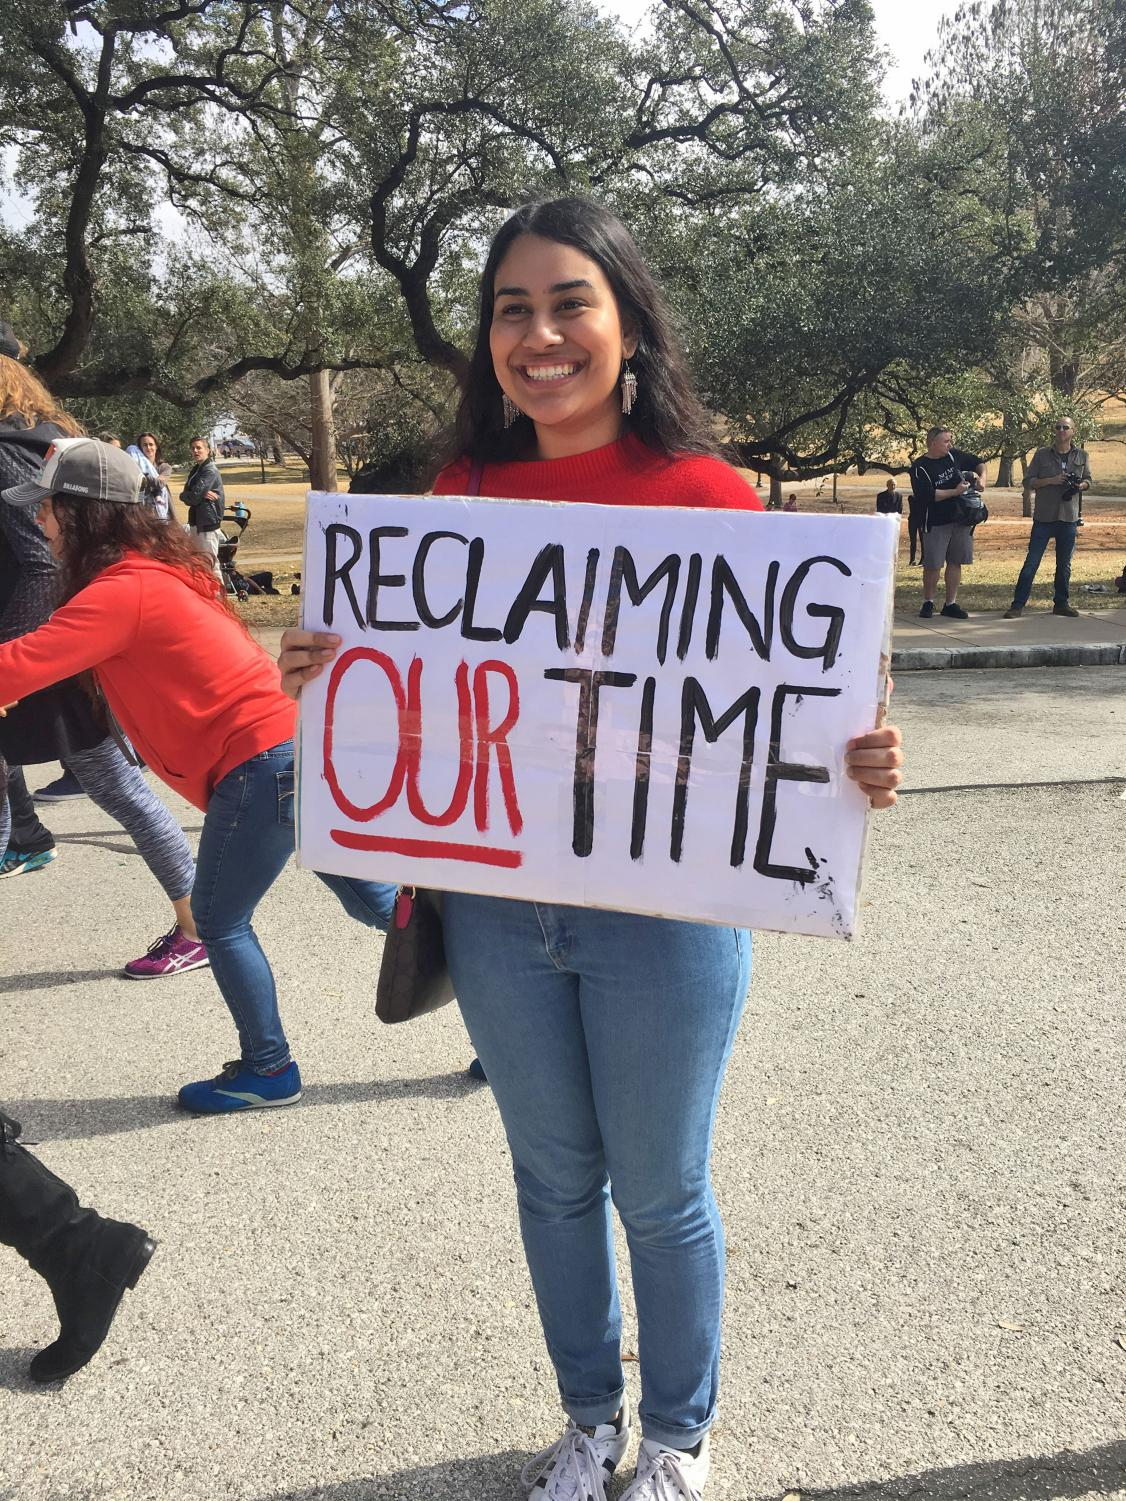 A young woman protests agains White Supremacy at the Capital.